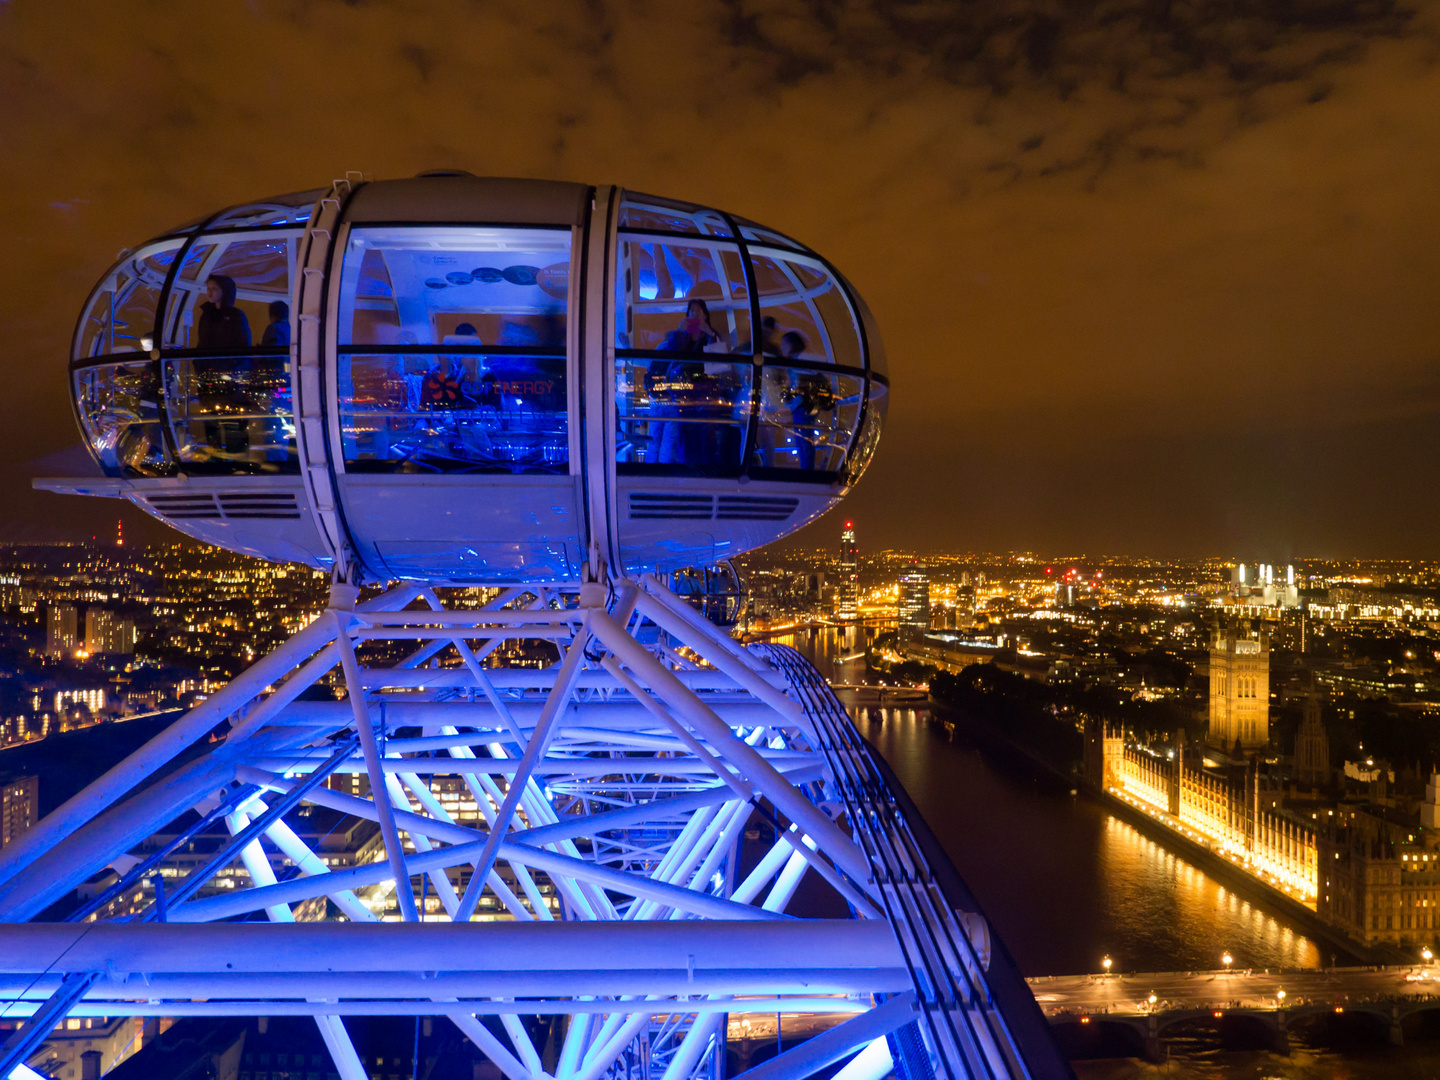 the London eye, starting in space